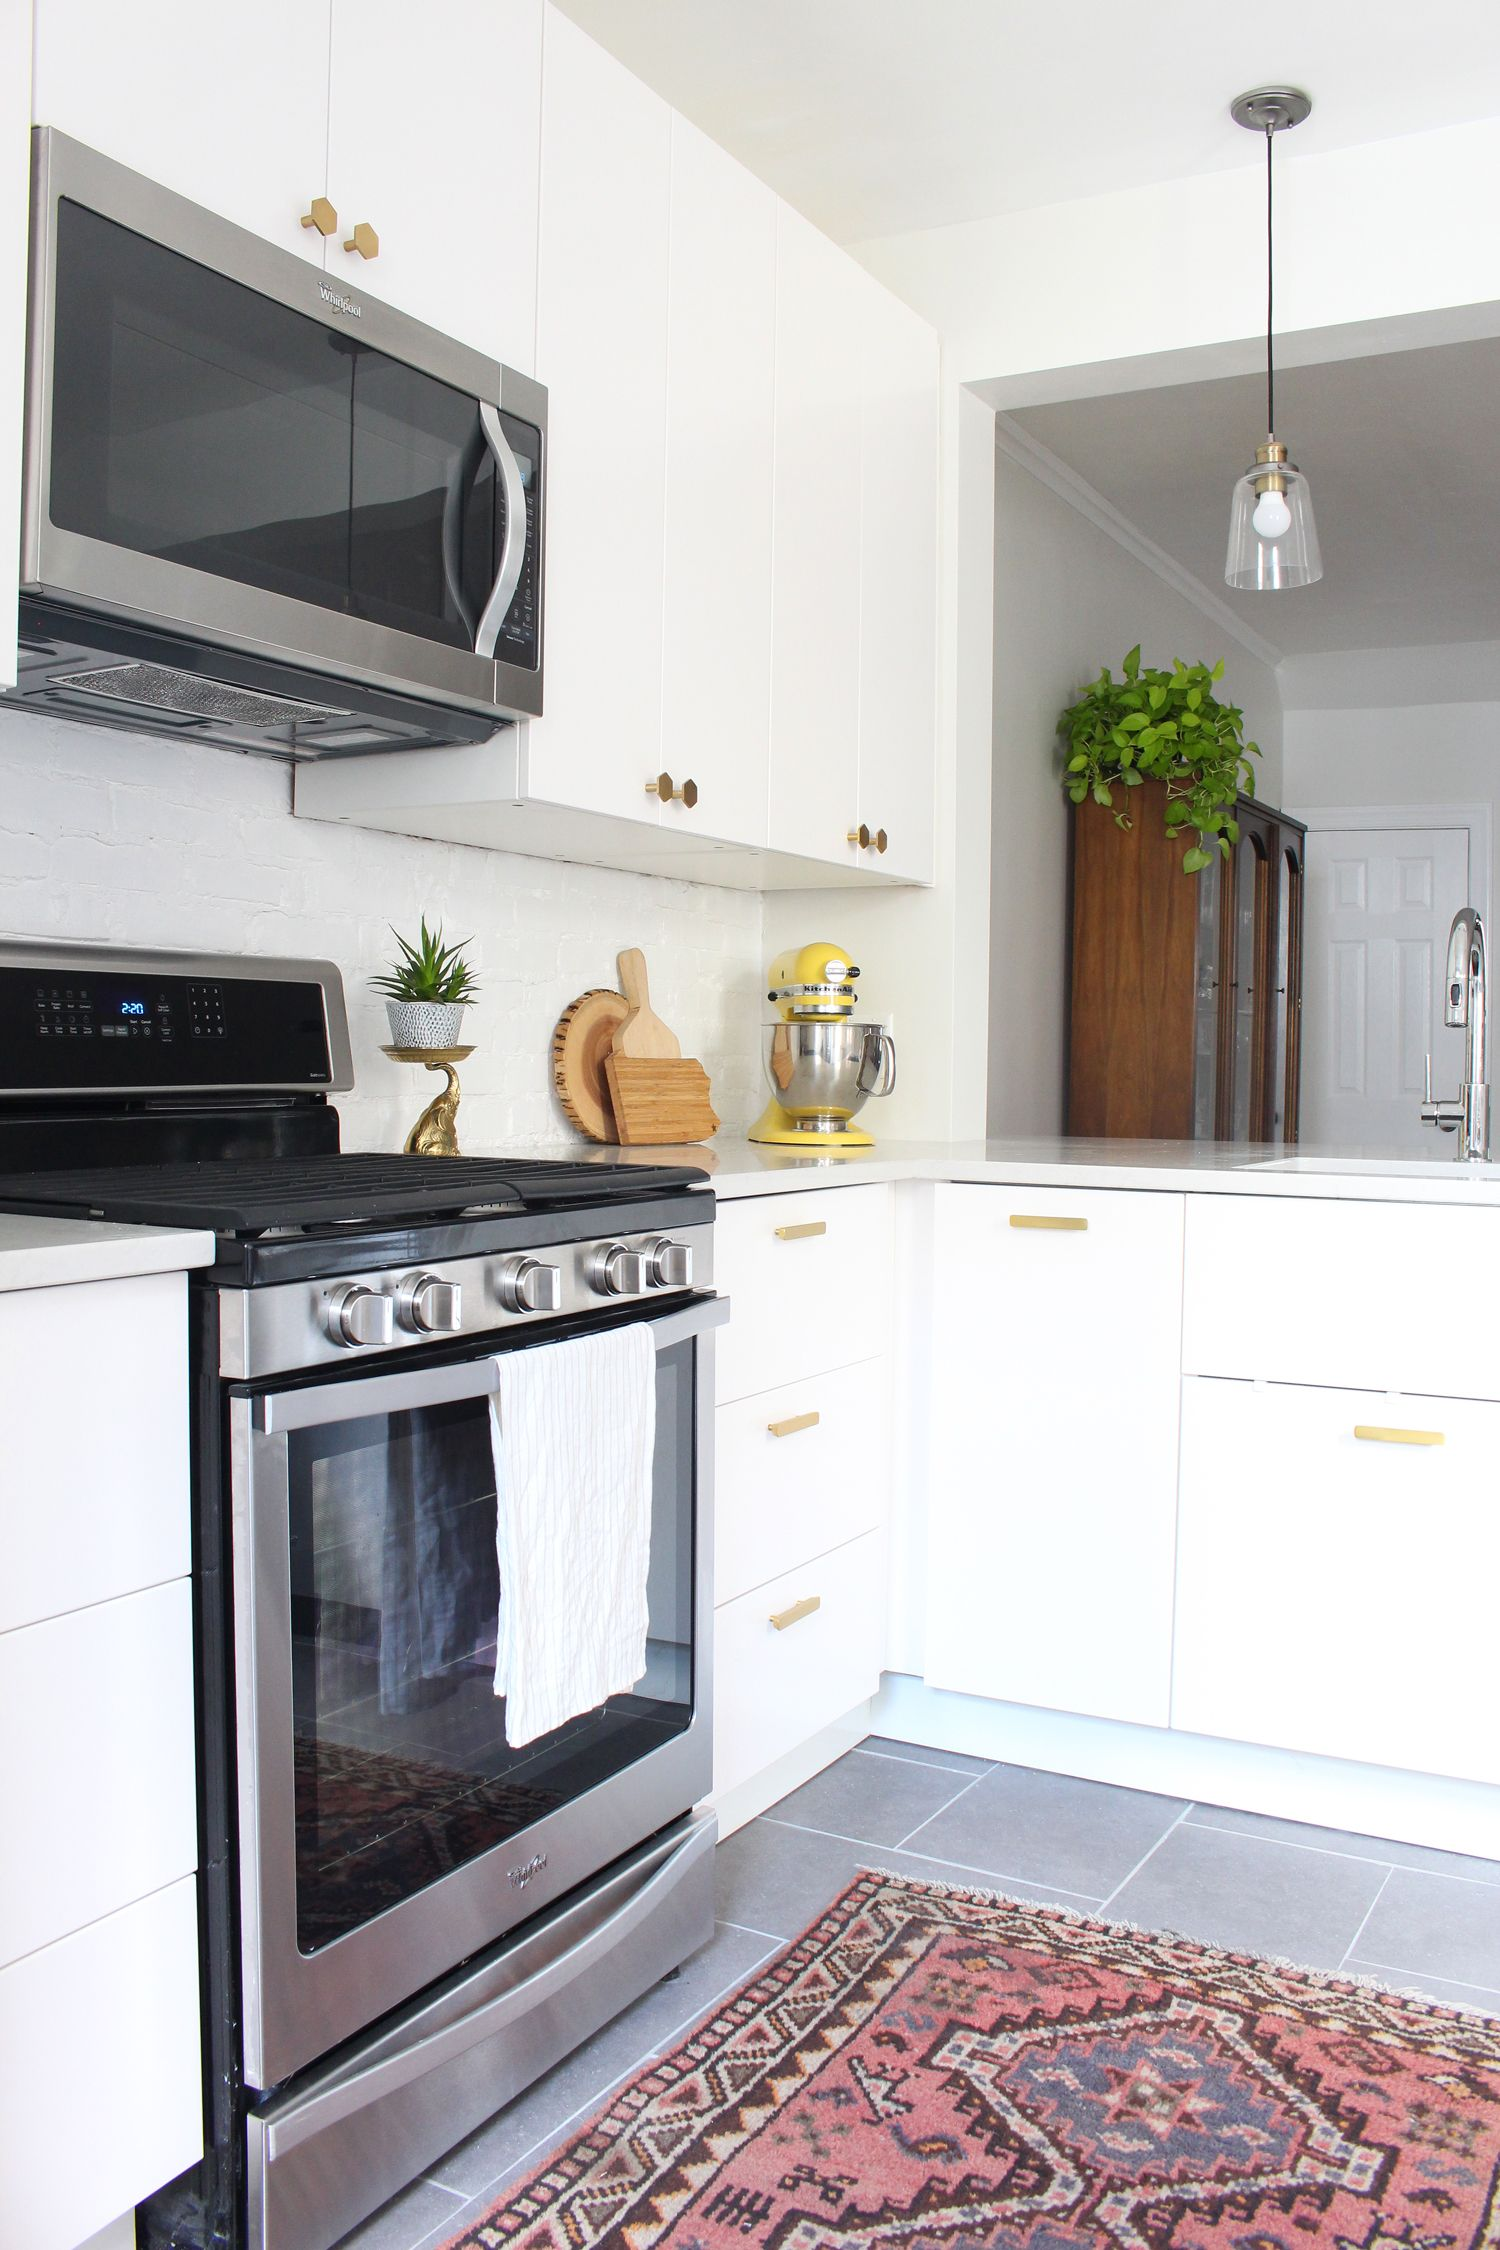 Before & After: Our Kitchen Renovation | Kitchens